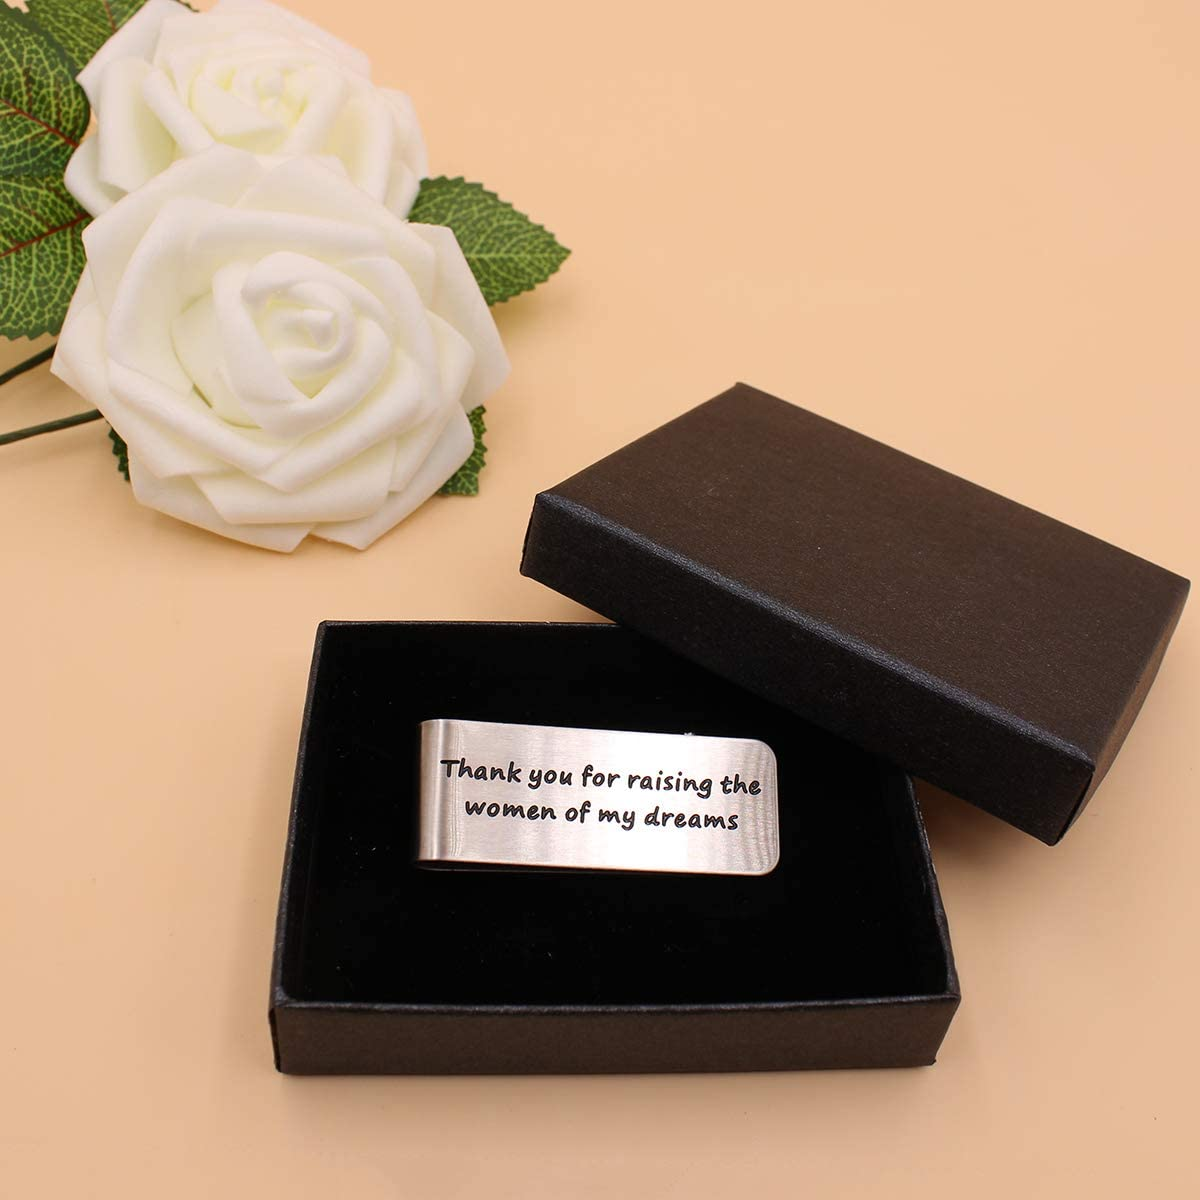 Money Clip, Thank you for raising the women of my dreams,Wedding Gift ,Dad Wedding gift from The Groom,Idea Gifts Present for Man Dad Father Father of The Bride